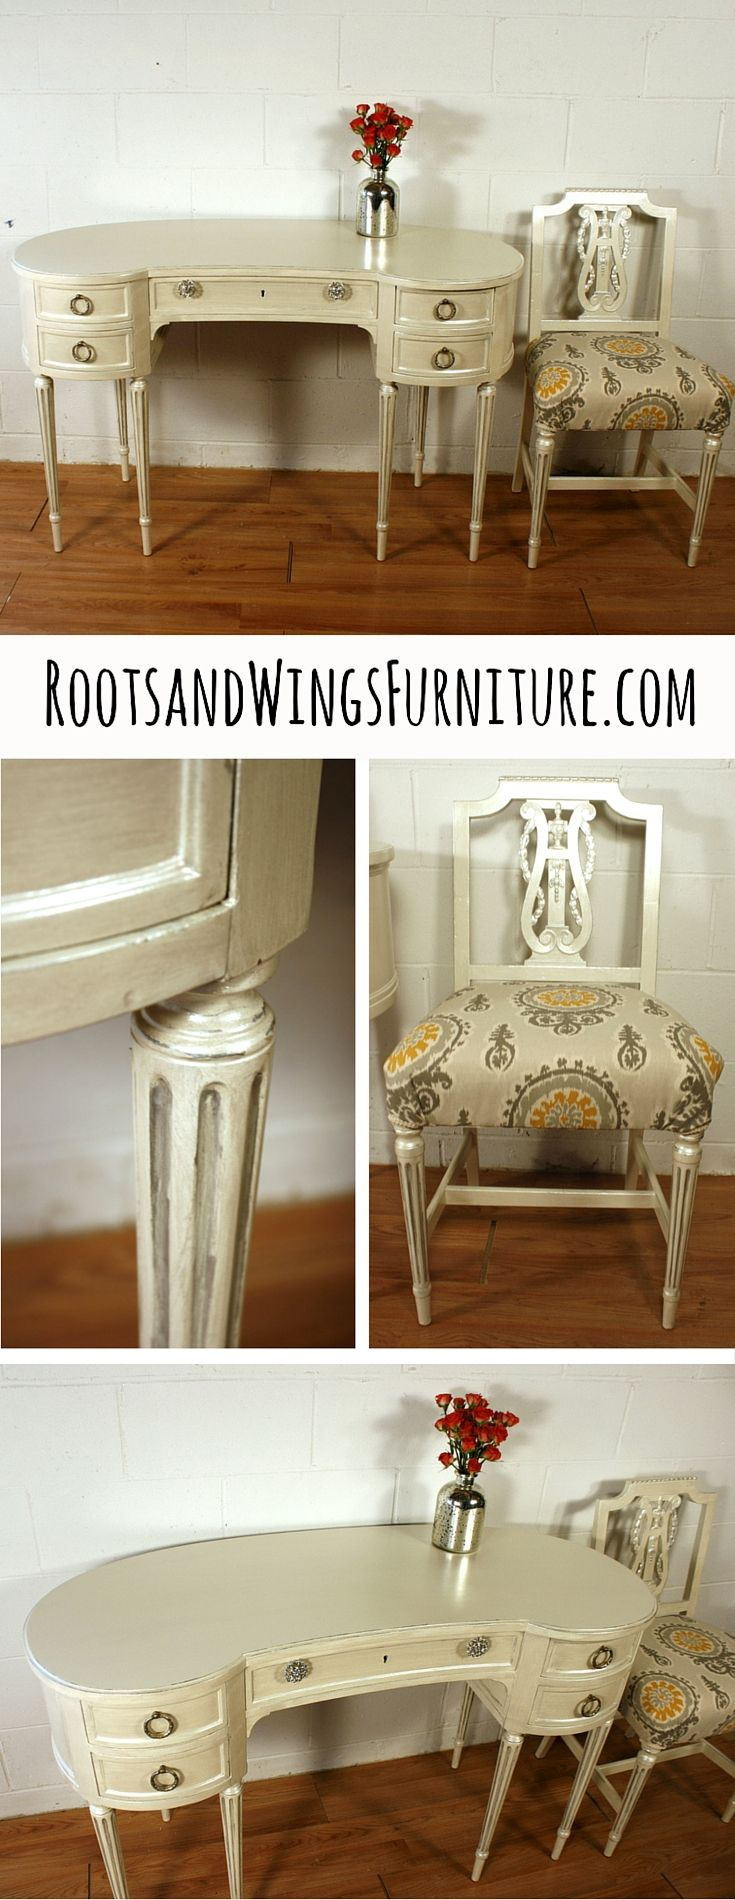 redoing furniture ideas. a pearl vanity painted in gf antique white milk paint and champagne effects by jenni redoing furniture ideas